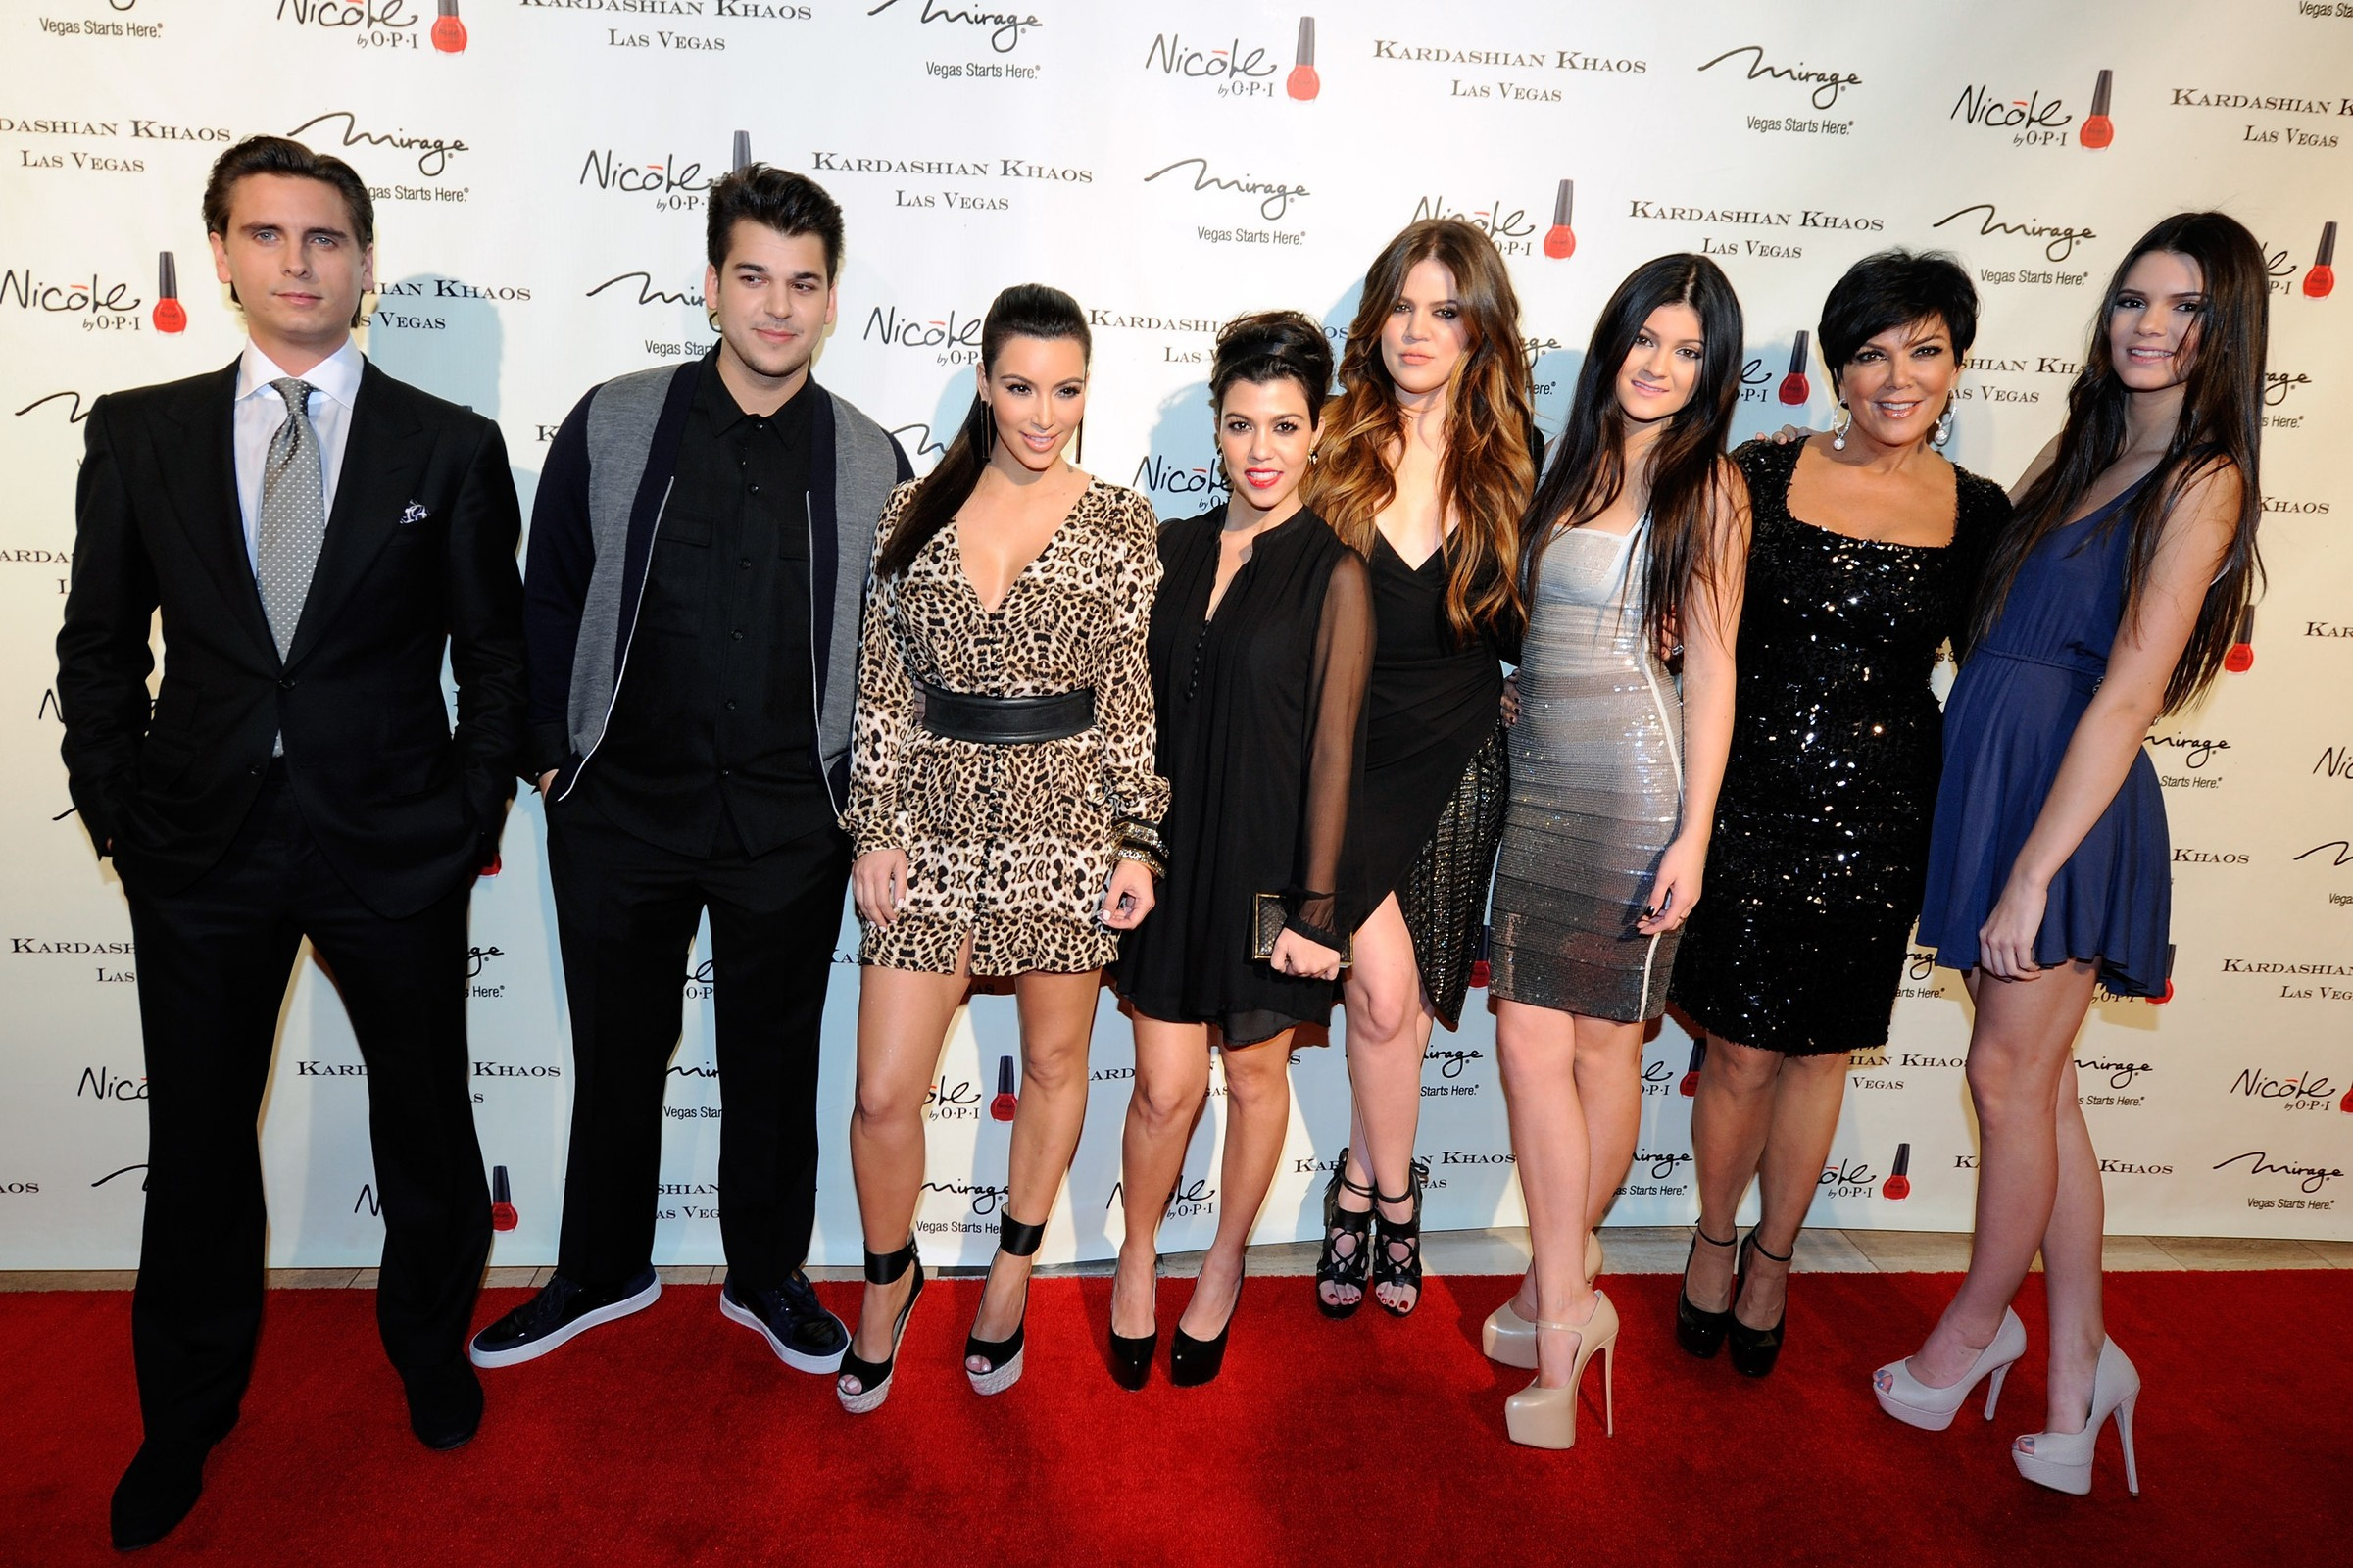 """I have so many siblings and I love it, they're my best friends and I would love that for my kids"", Kardashian said in 2014. (Photo: Archive)"